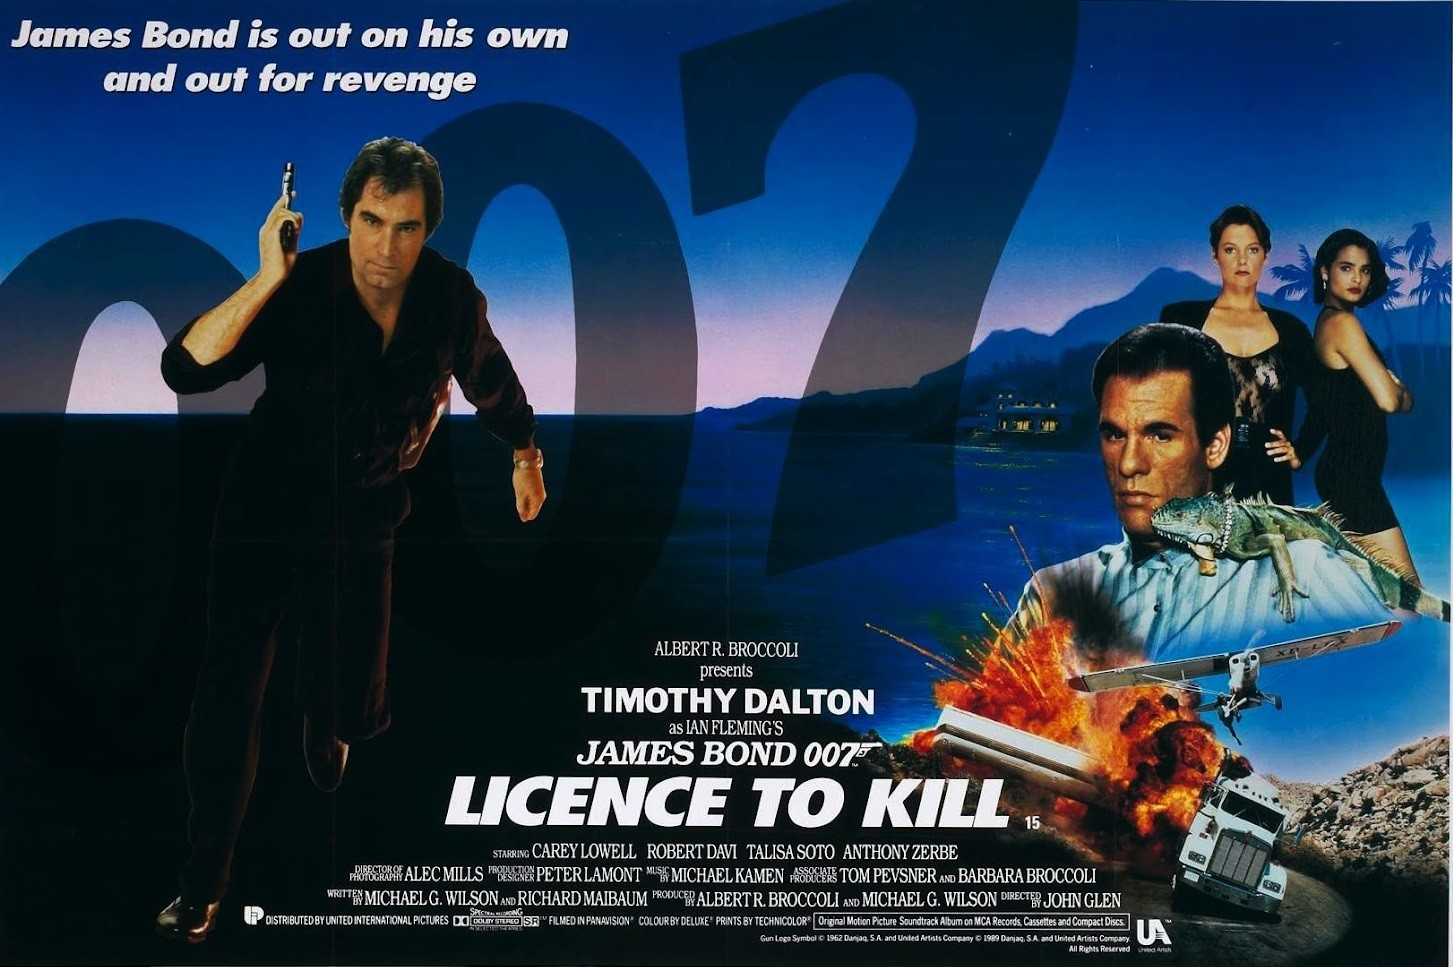 b81e14a3fe859756f9c6110b53d3a561 20 Reasons Why Timothy Dalton Was Probably The Best James Bond Ever